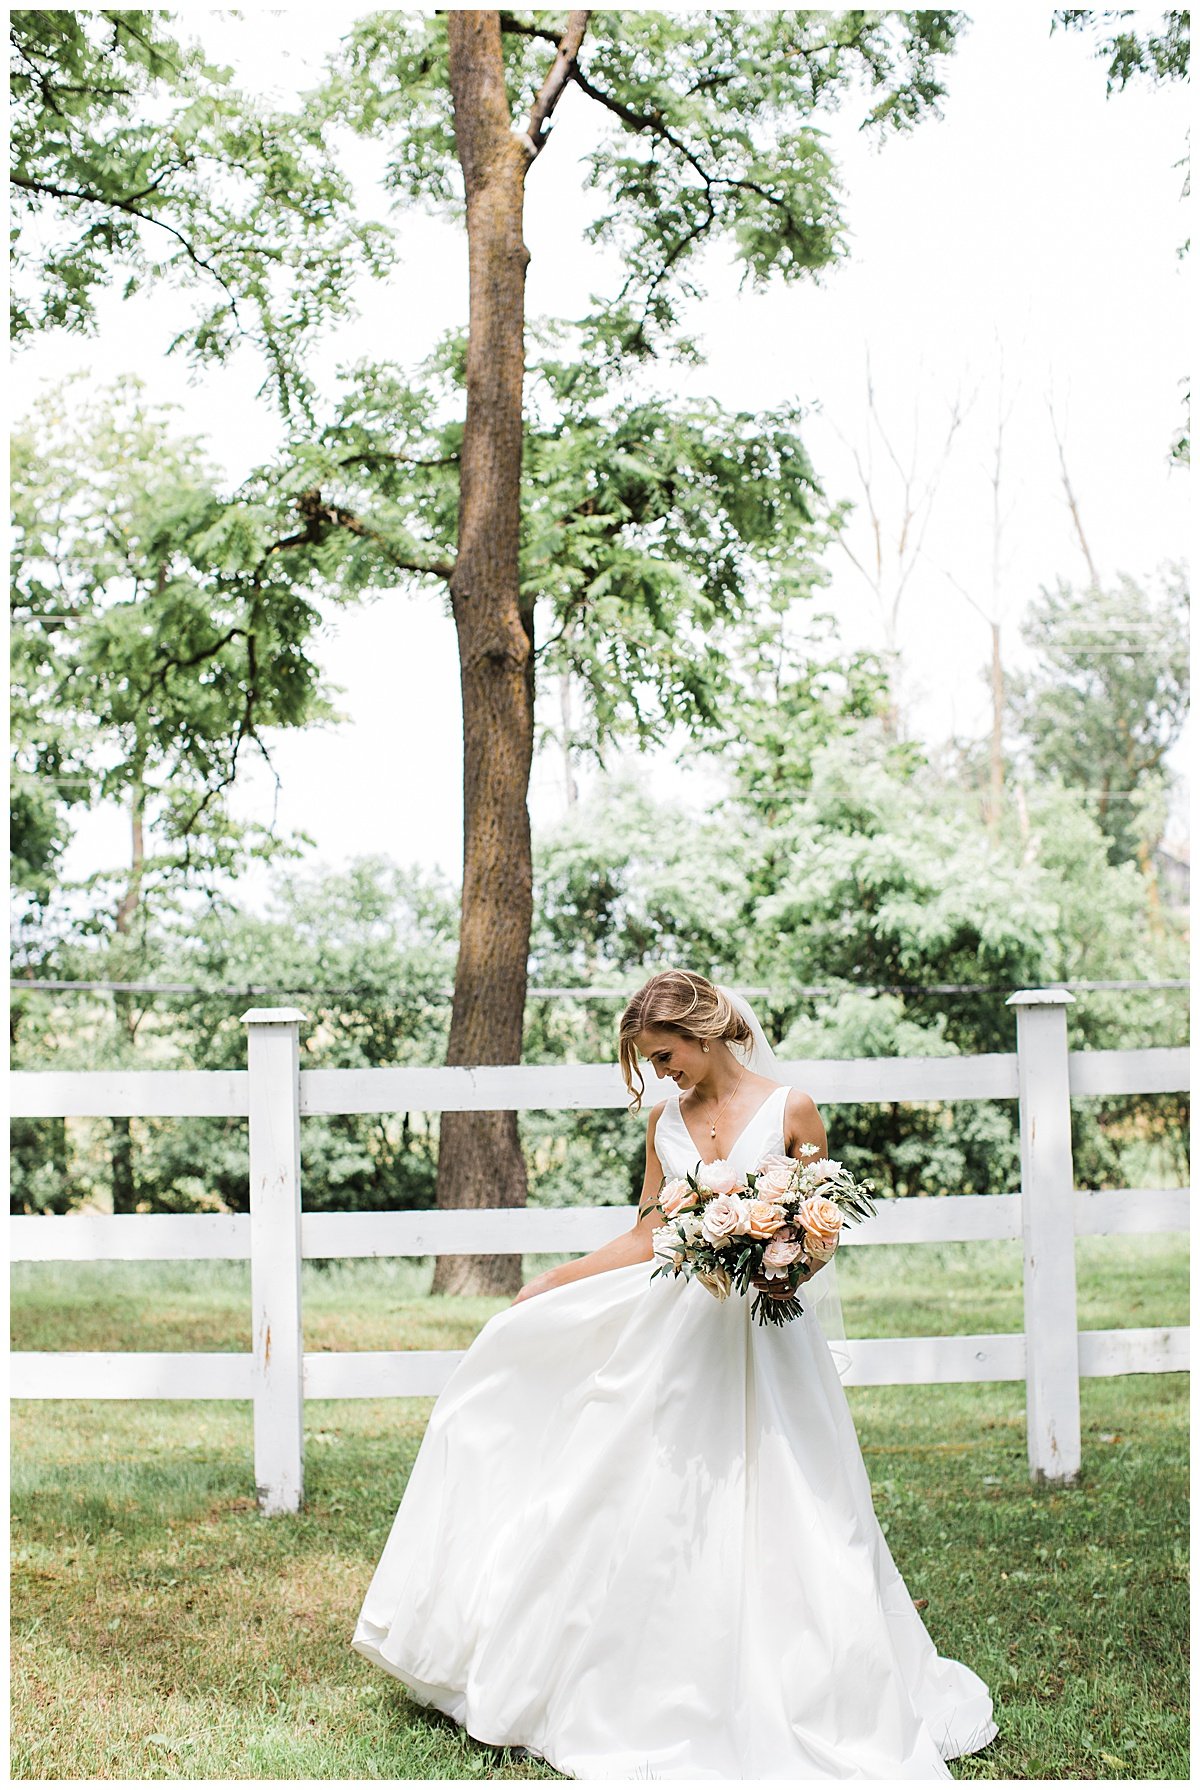 Bride under tree in front of white fence holding her gown up| Georgetown, Ontario wedding| Toronto wedding photographer| 3photography